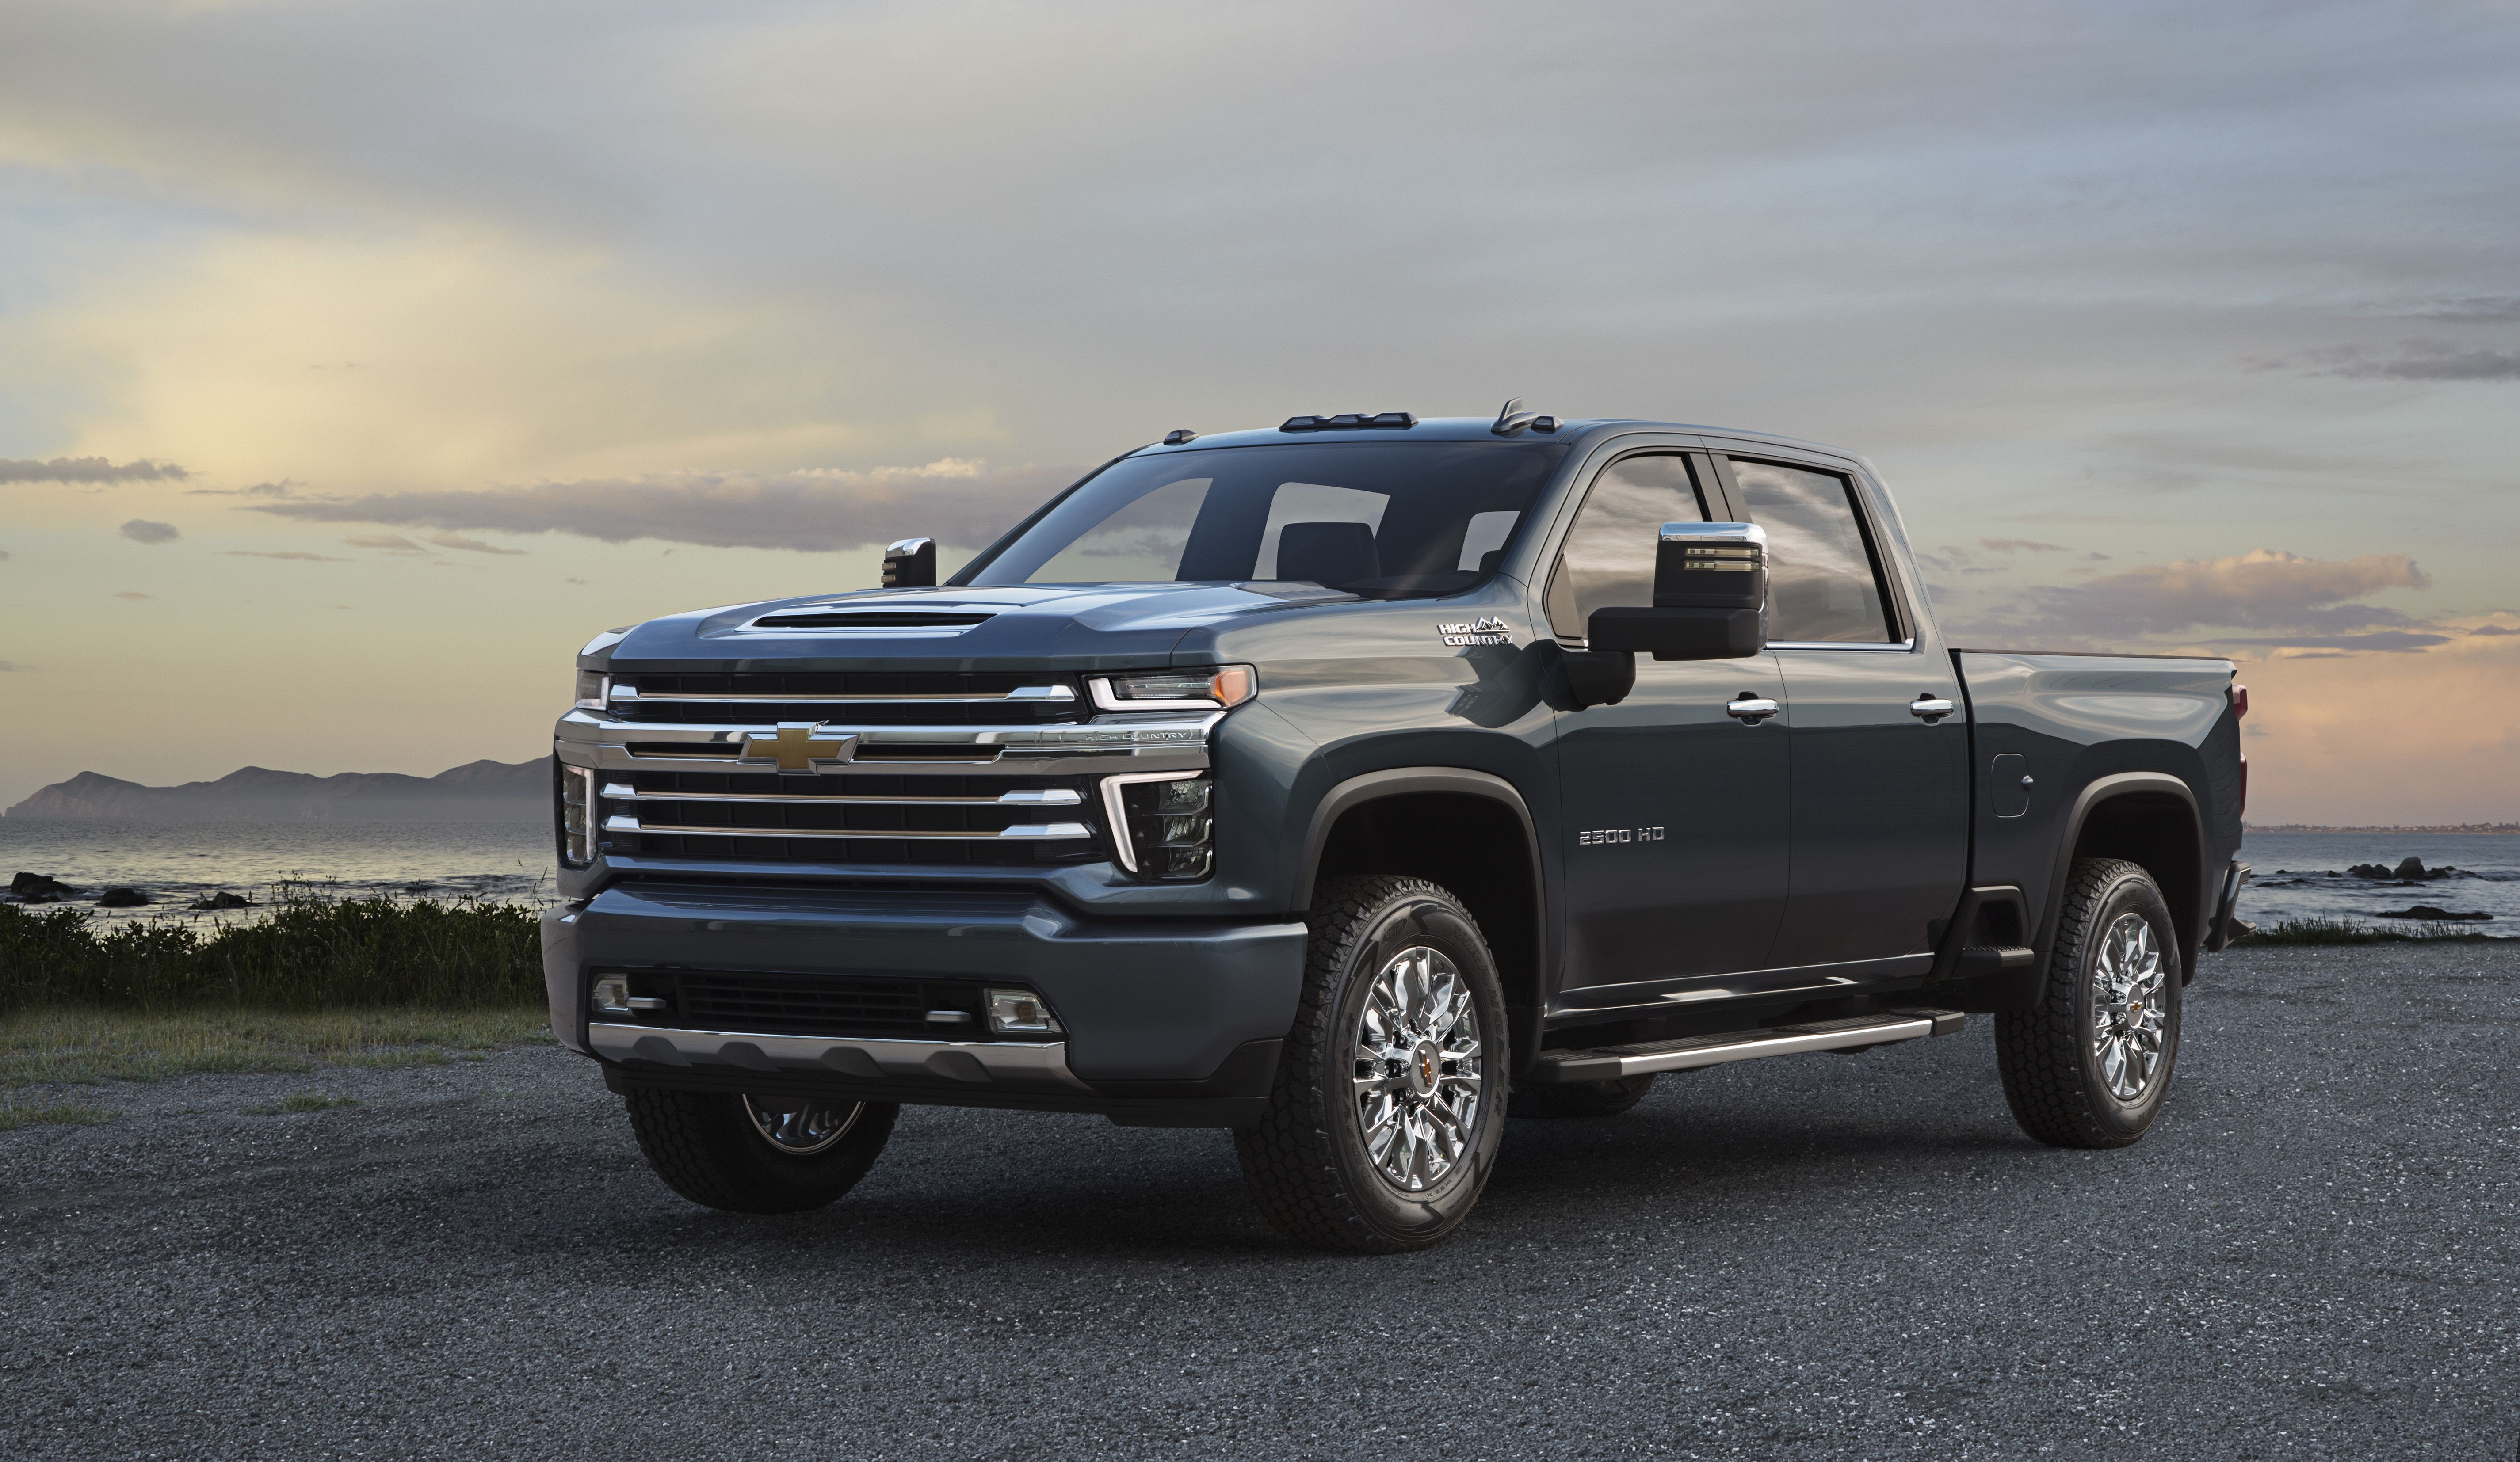 2020 Chevrolet Silverado New Model and Performance